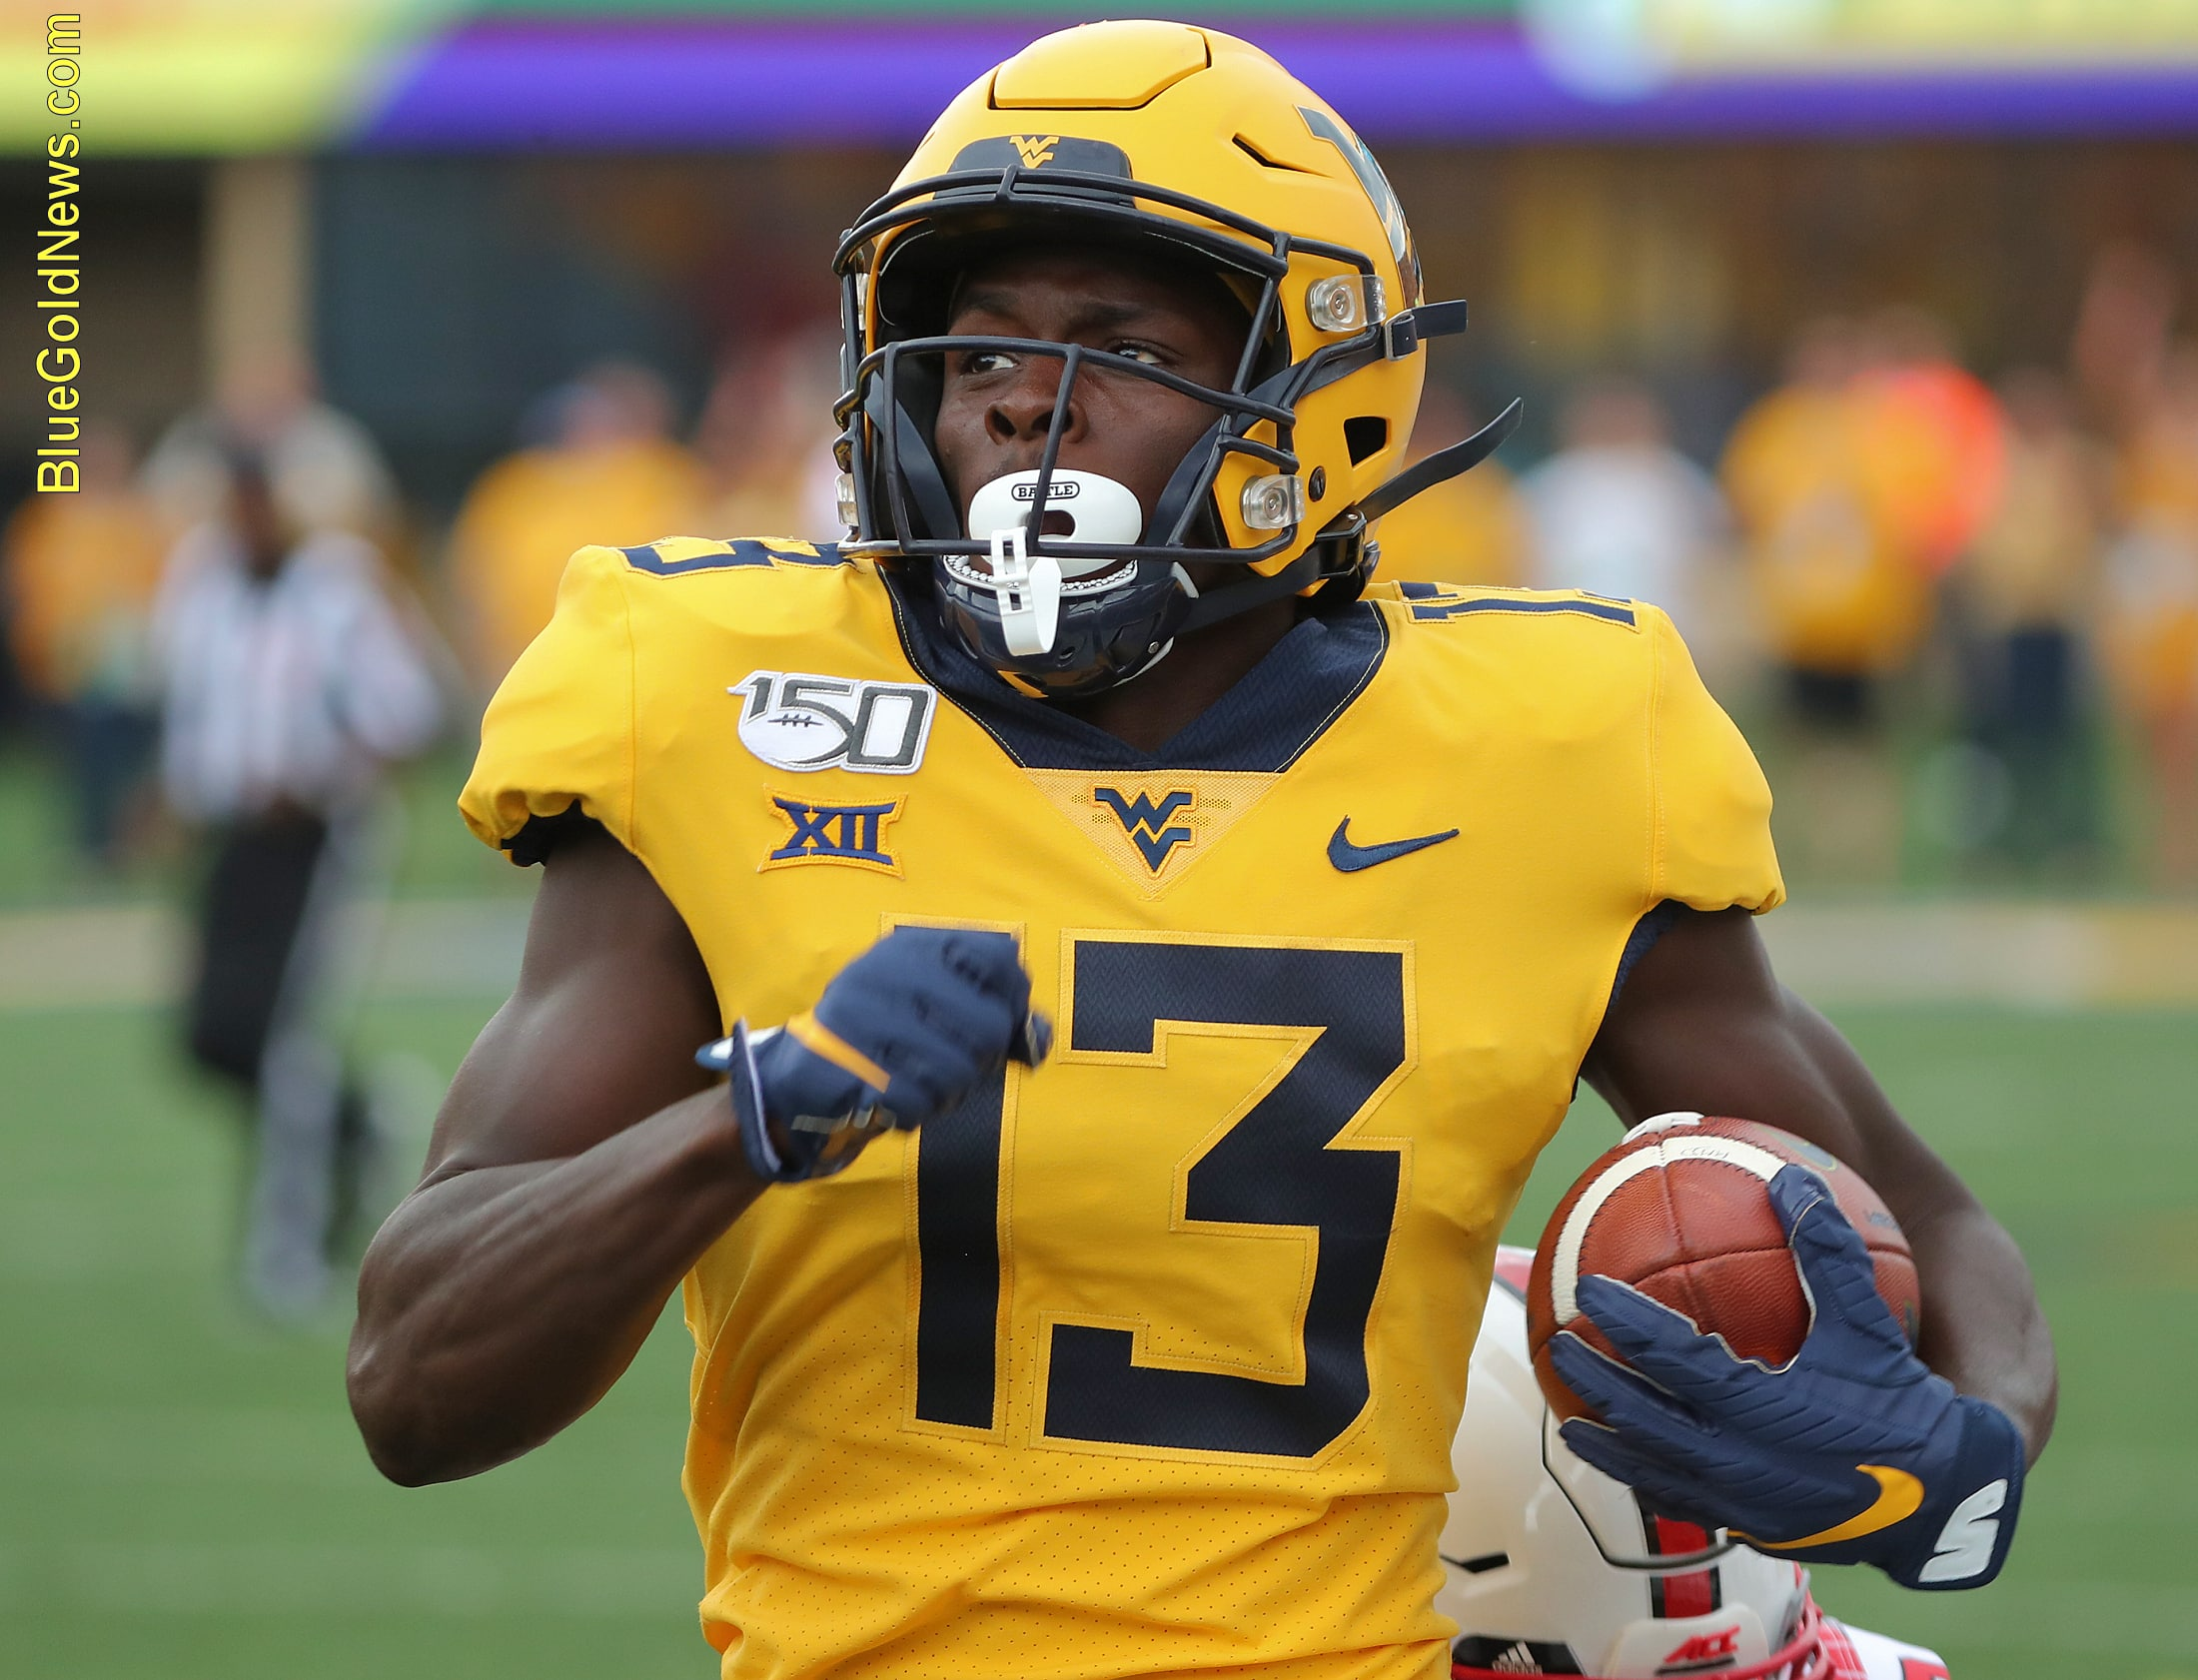 West Virginia receiver Sam James eyes the scoreboard to check his pursuers